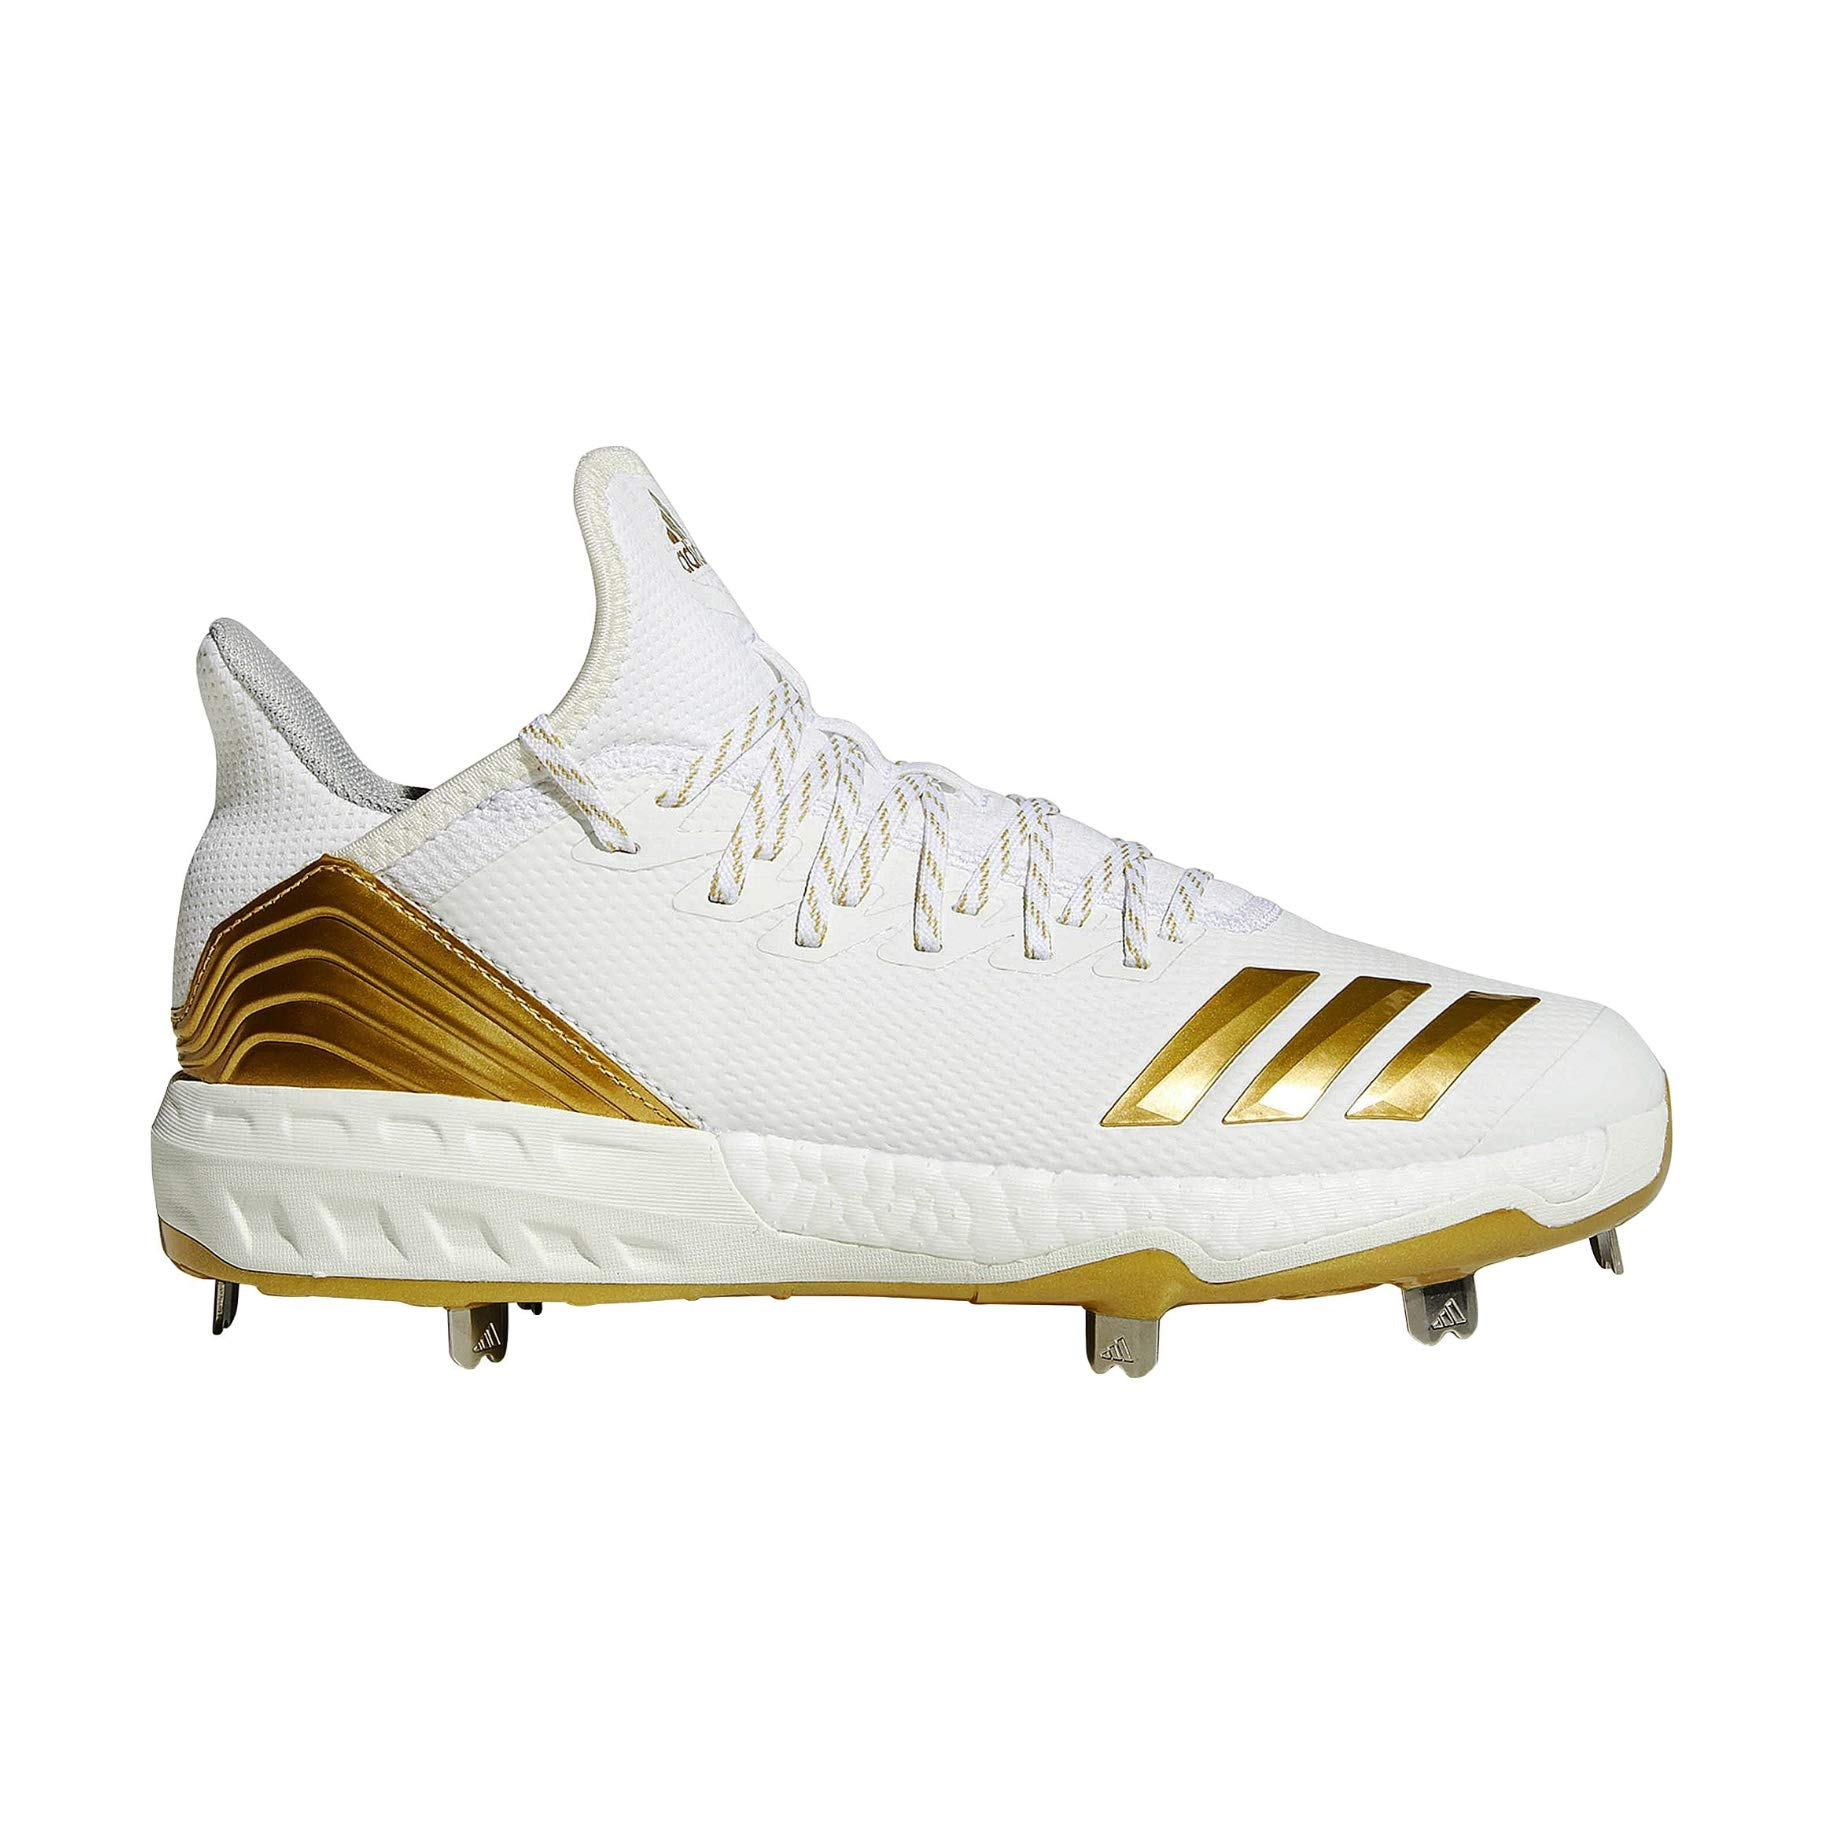 adidas Icon 4 Cleat - Men's Baseball 8 White/Gold Metallic